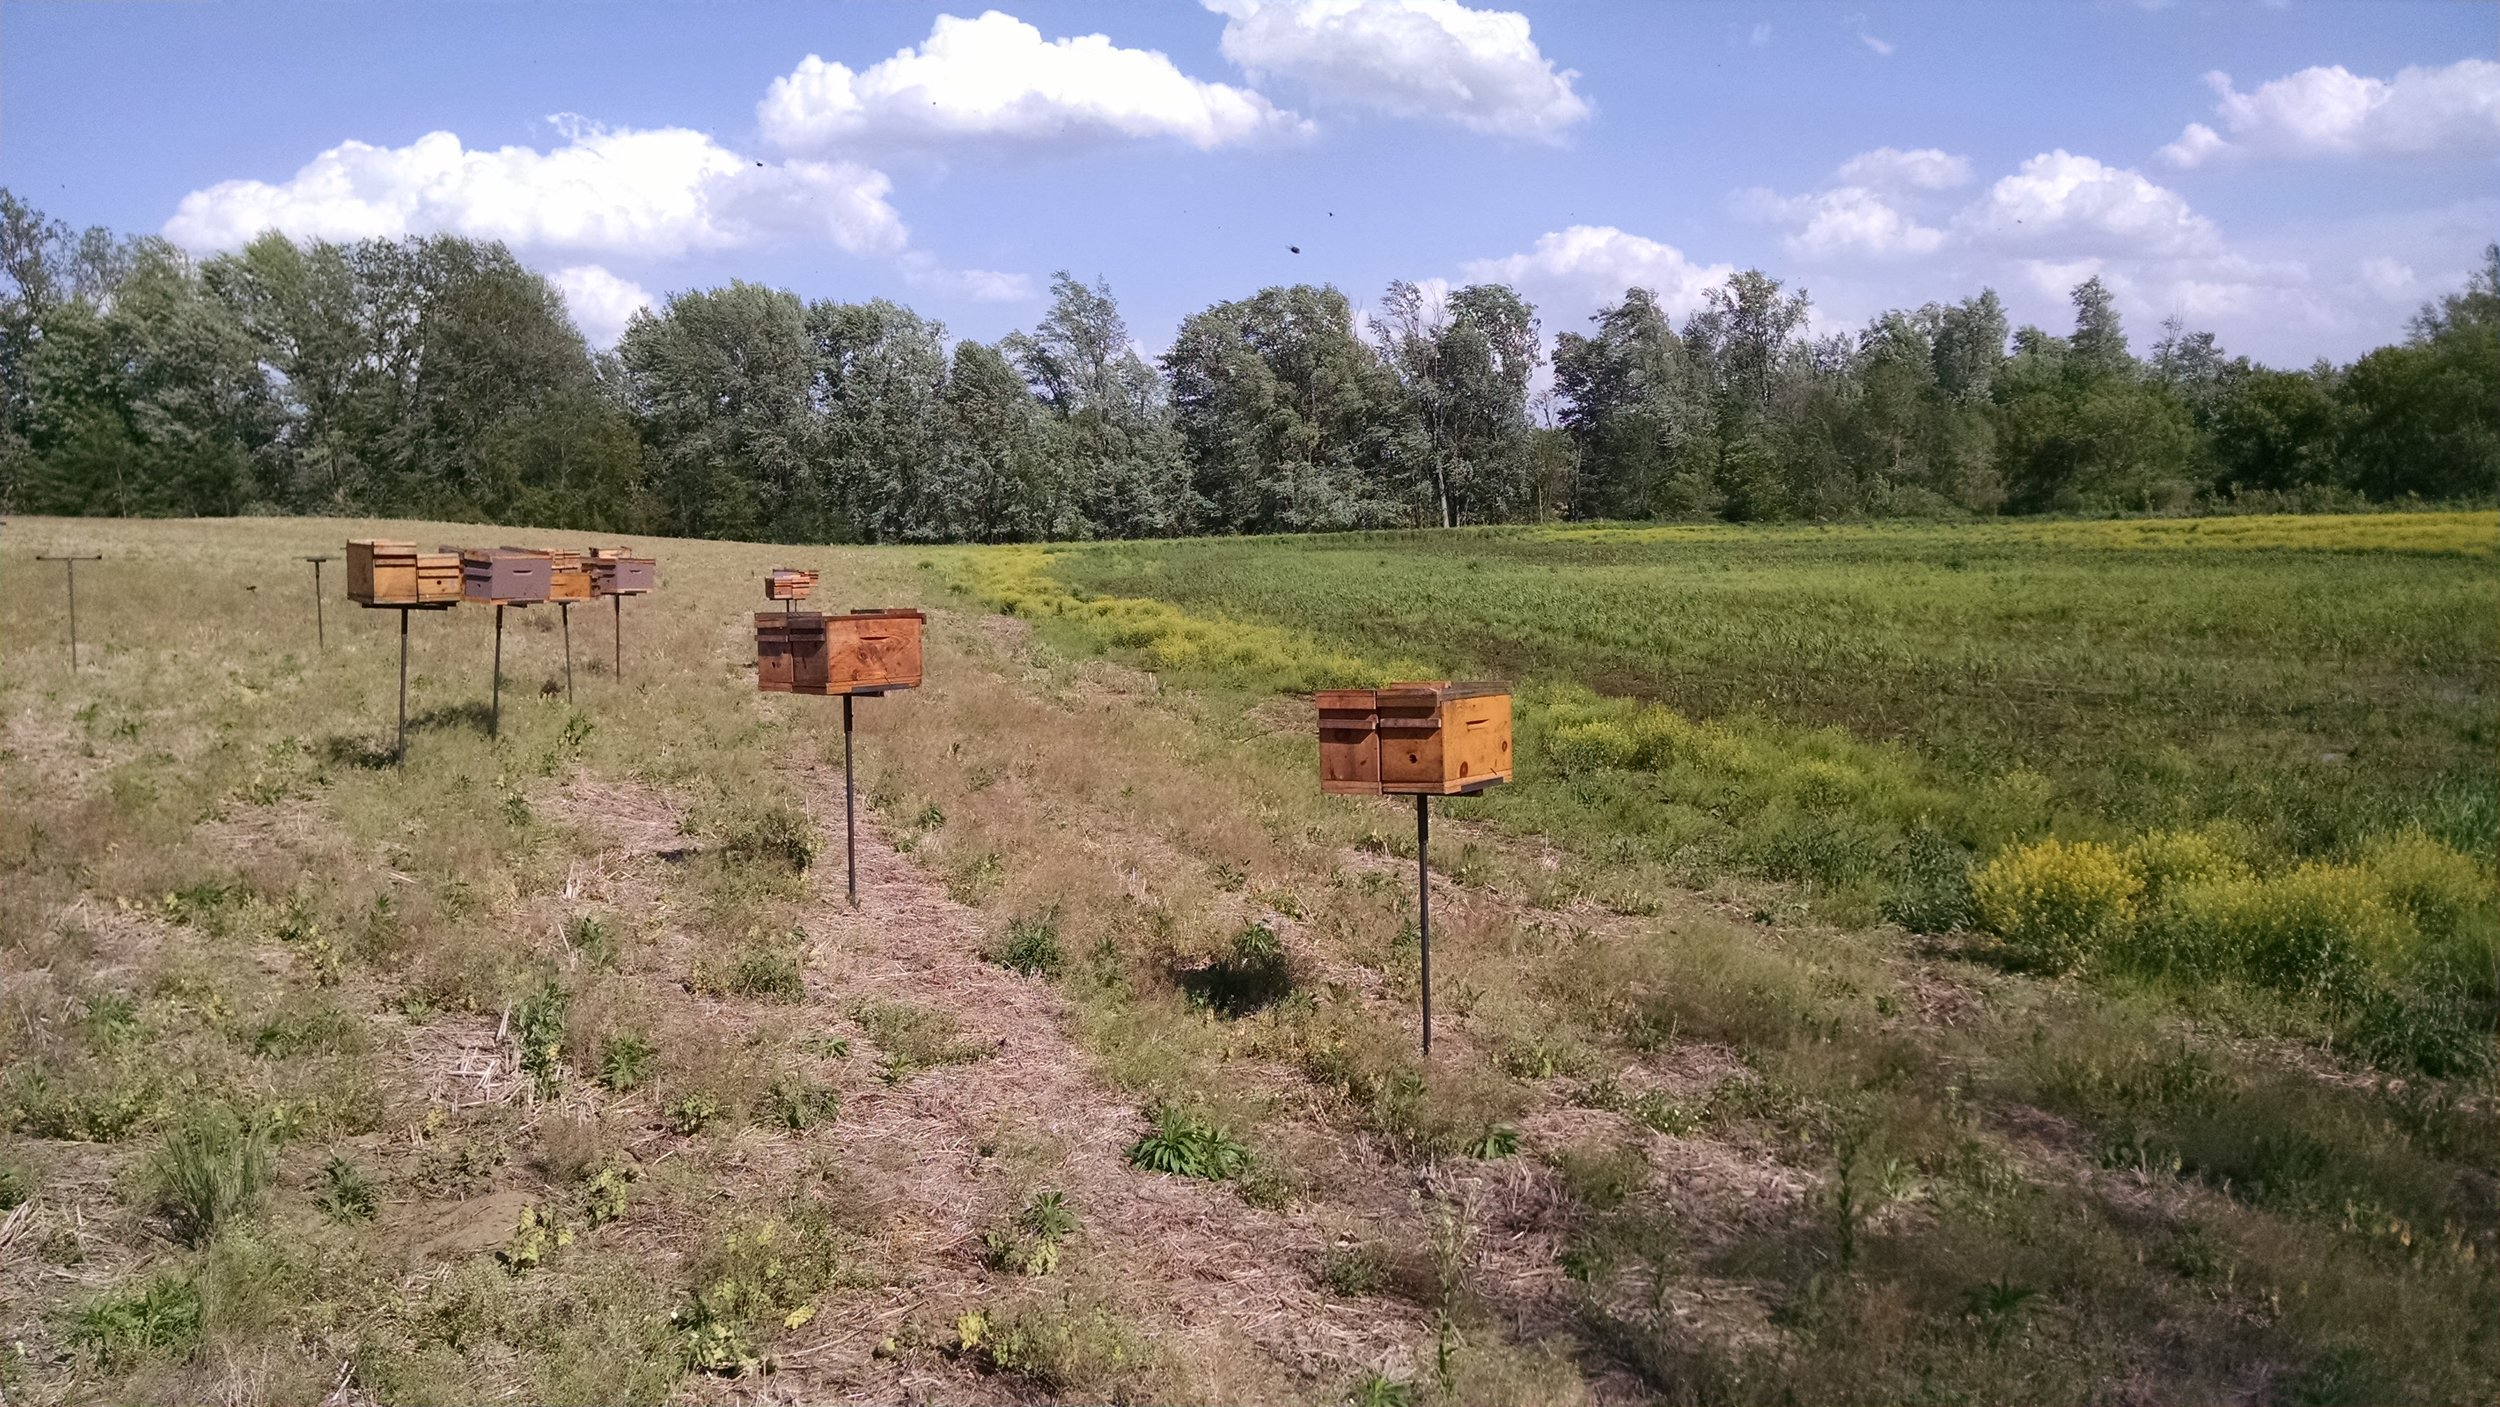 The nucs up and ready for cells!  The green part behind is wetland that is part of the restoration.  Frustratingly wet still - no planting date set.